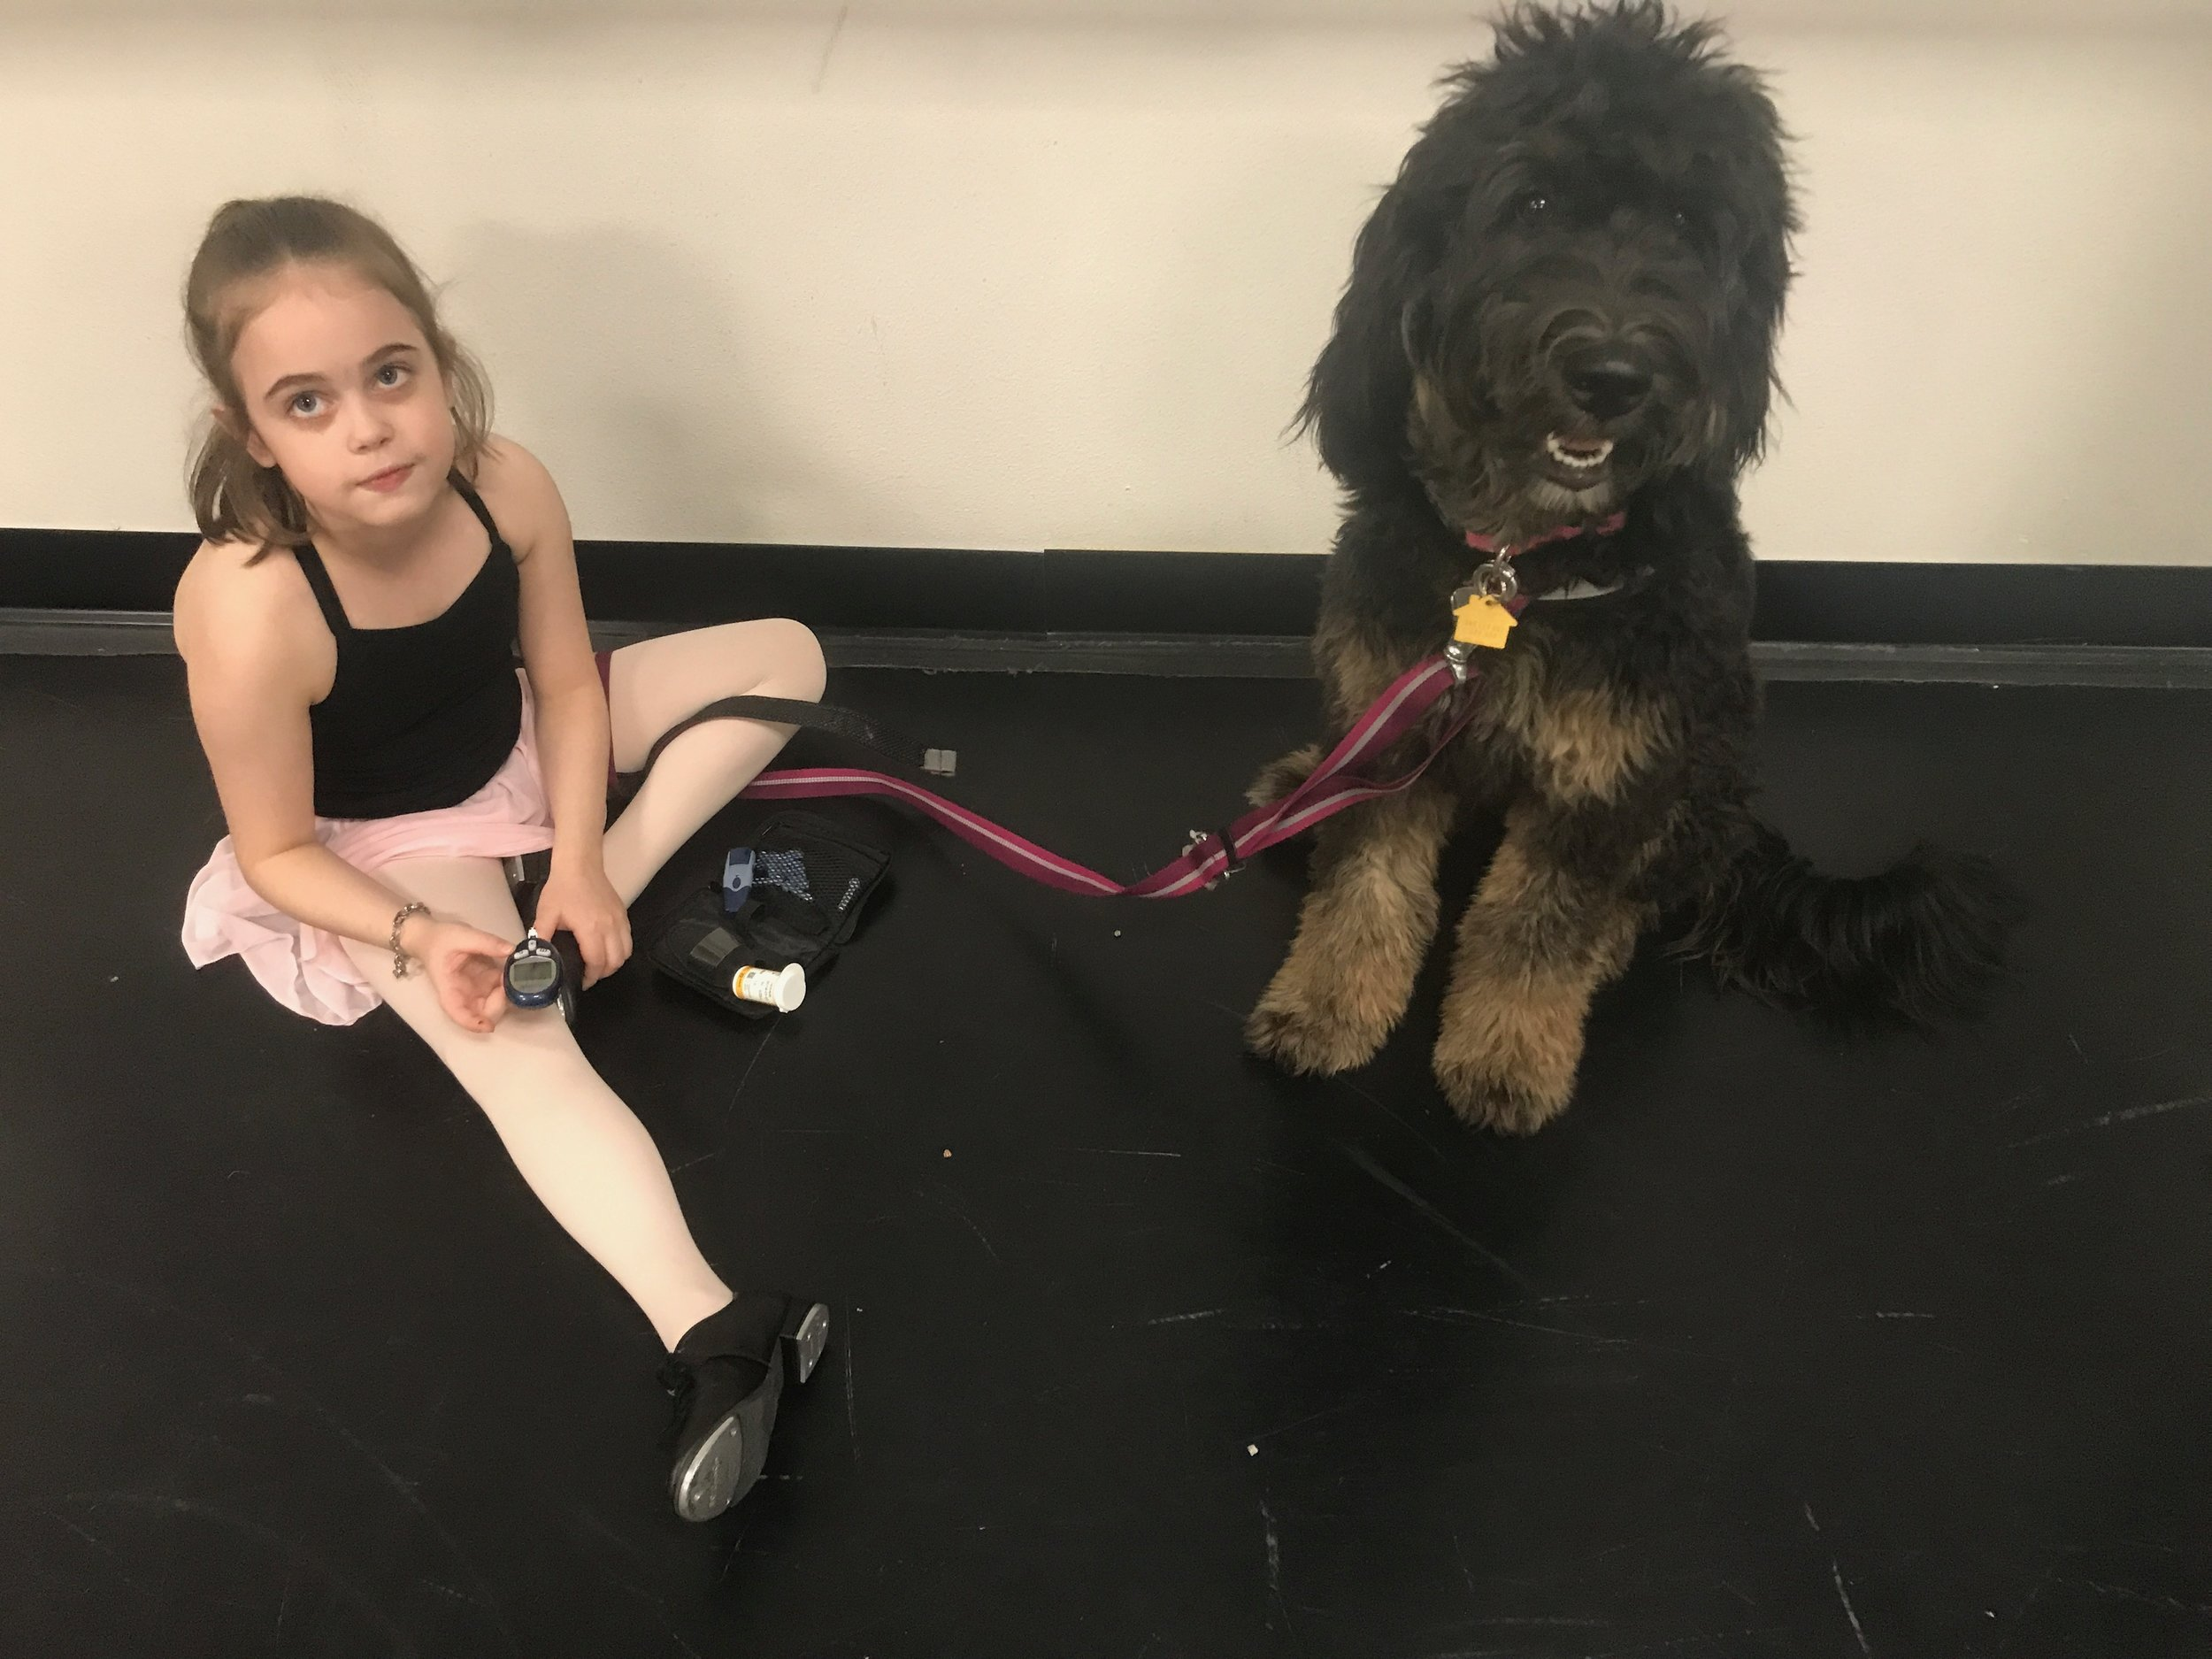 Mazie First Alert - Mazie had a live alert at Phoebe's dance class. Phoebe is next to her double checking to see if Mazie is right.